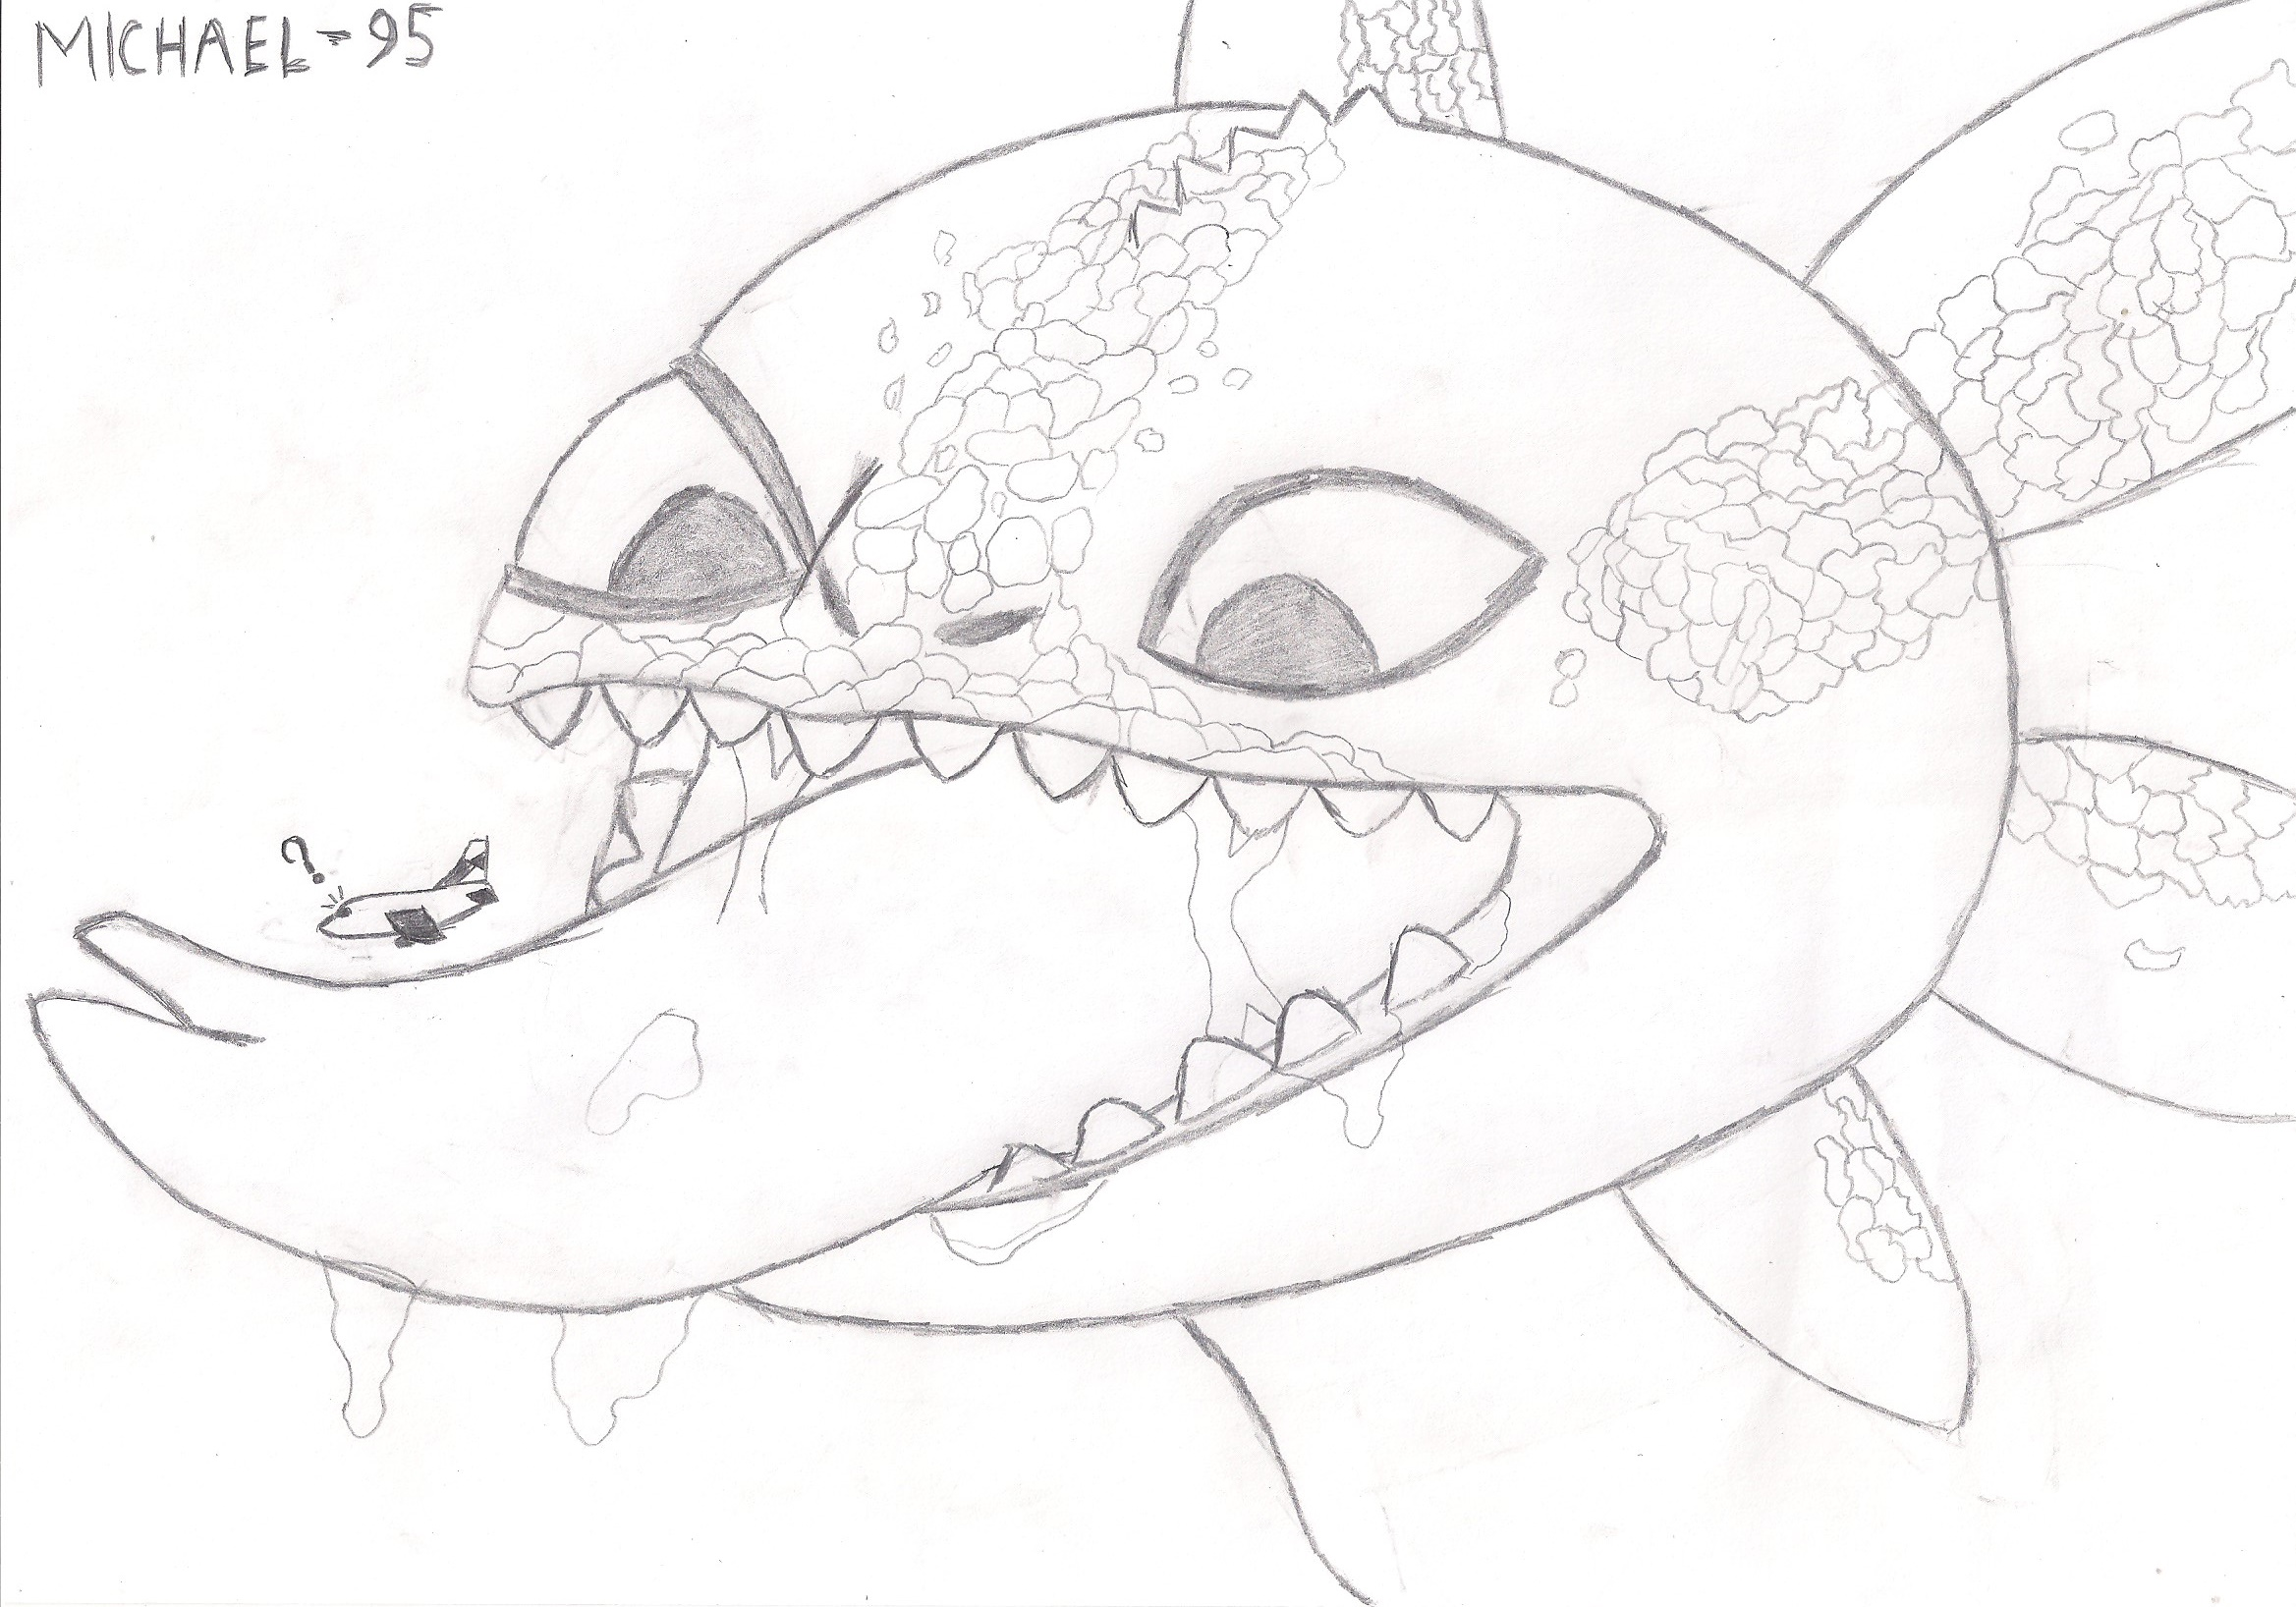 Toothless vore